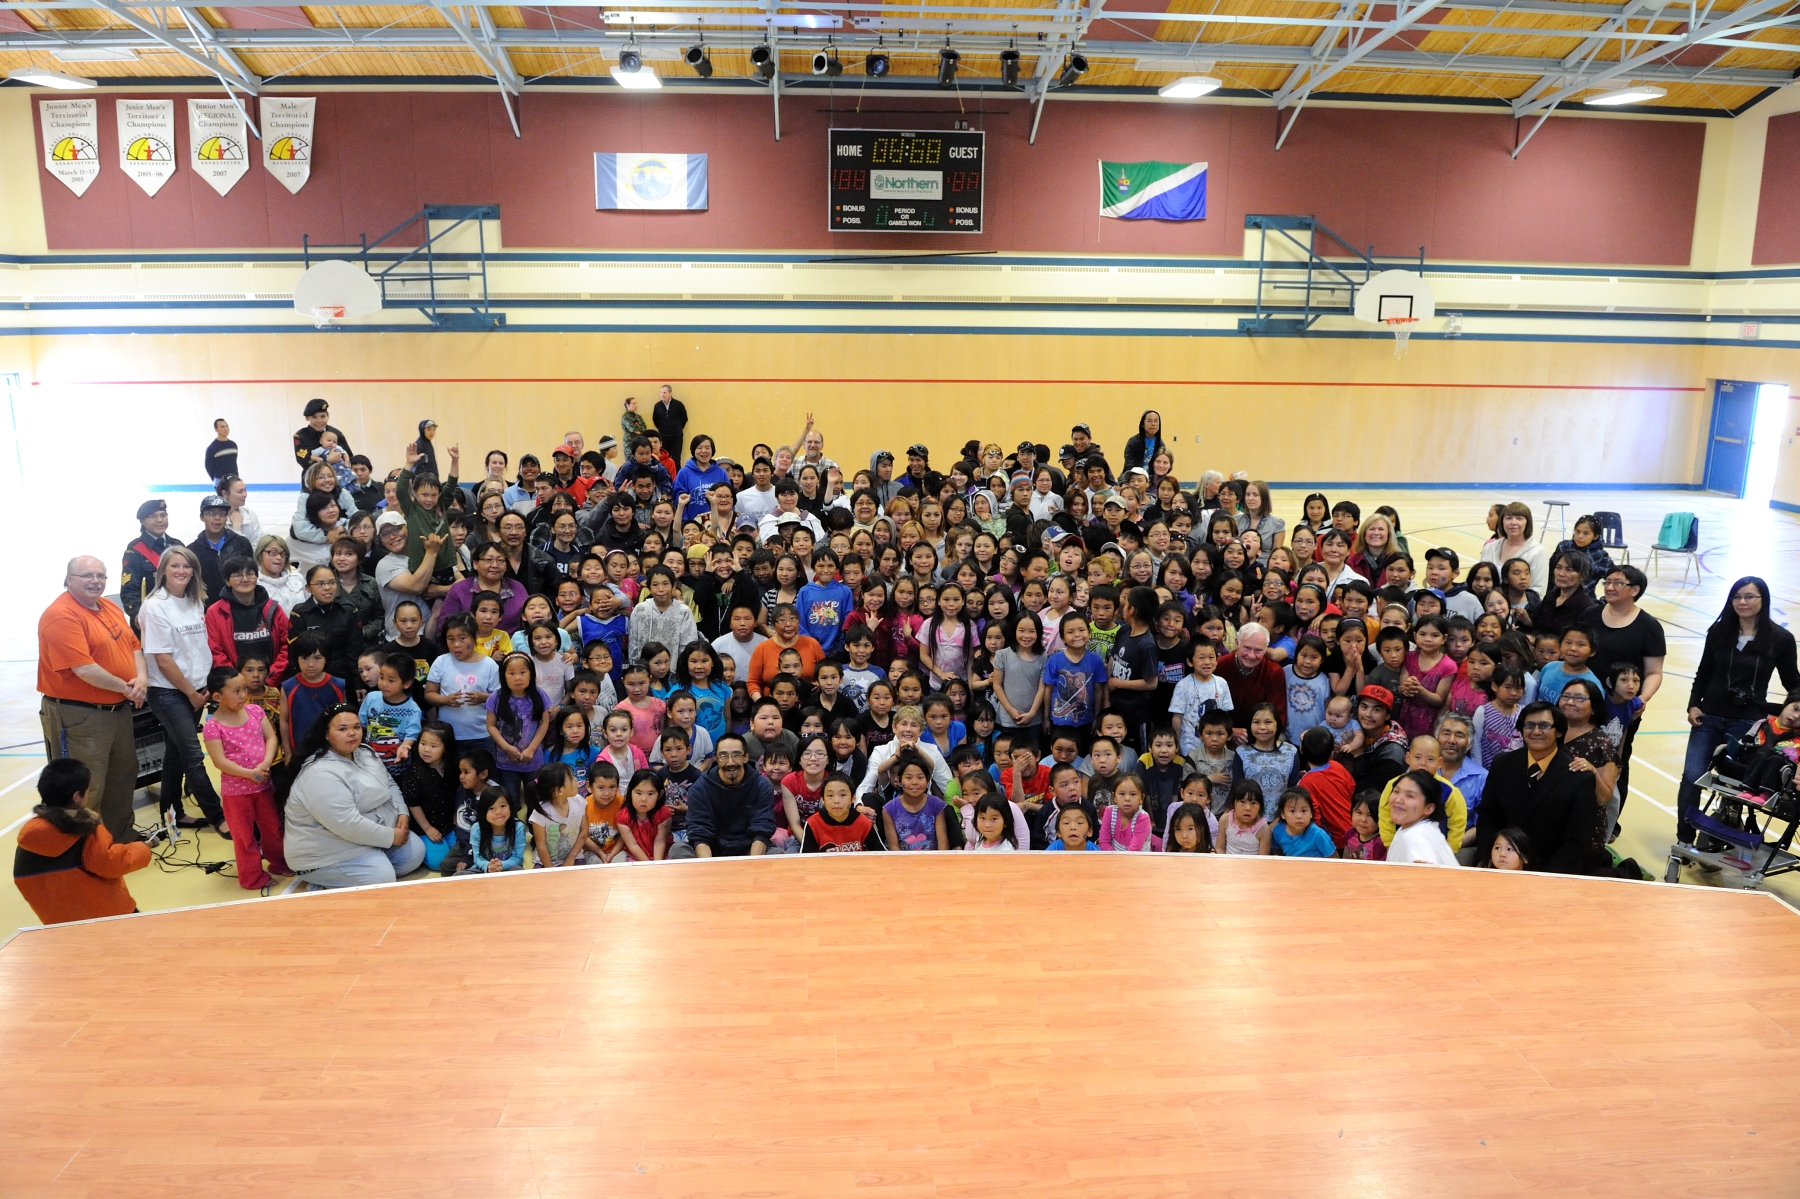 Their Excellencies met with all the students of the Tusarvik School in the school's gymnasium.